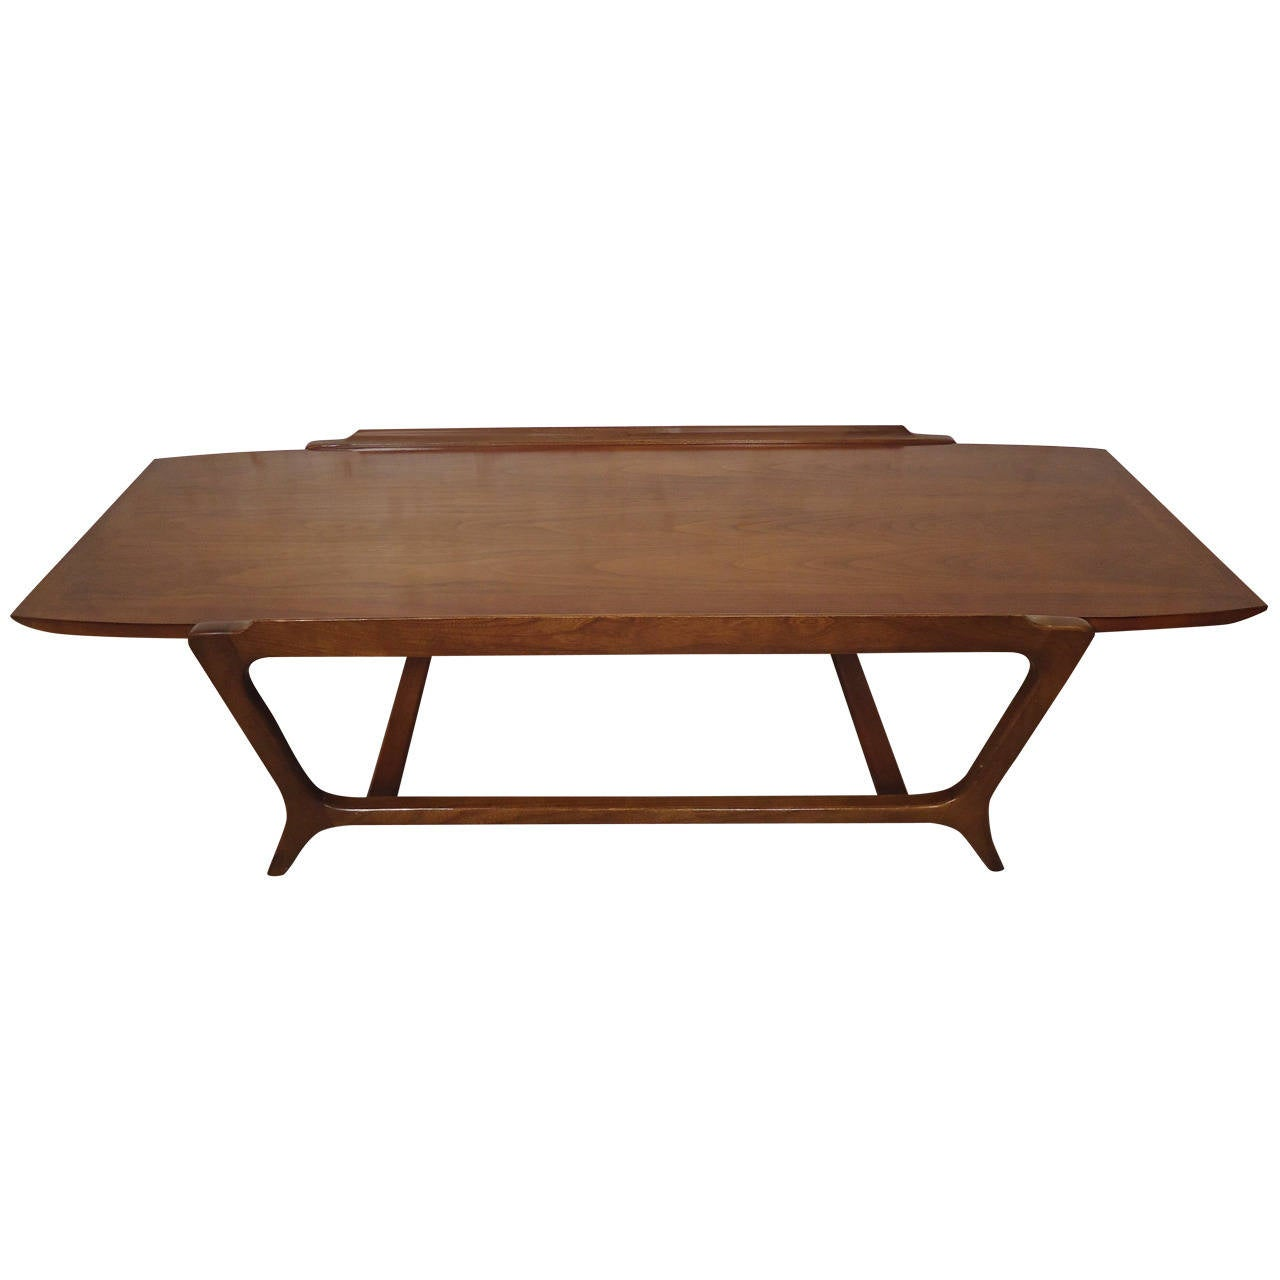 Outstanding Mid-Century Walnut Coffee Table by Lane